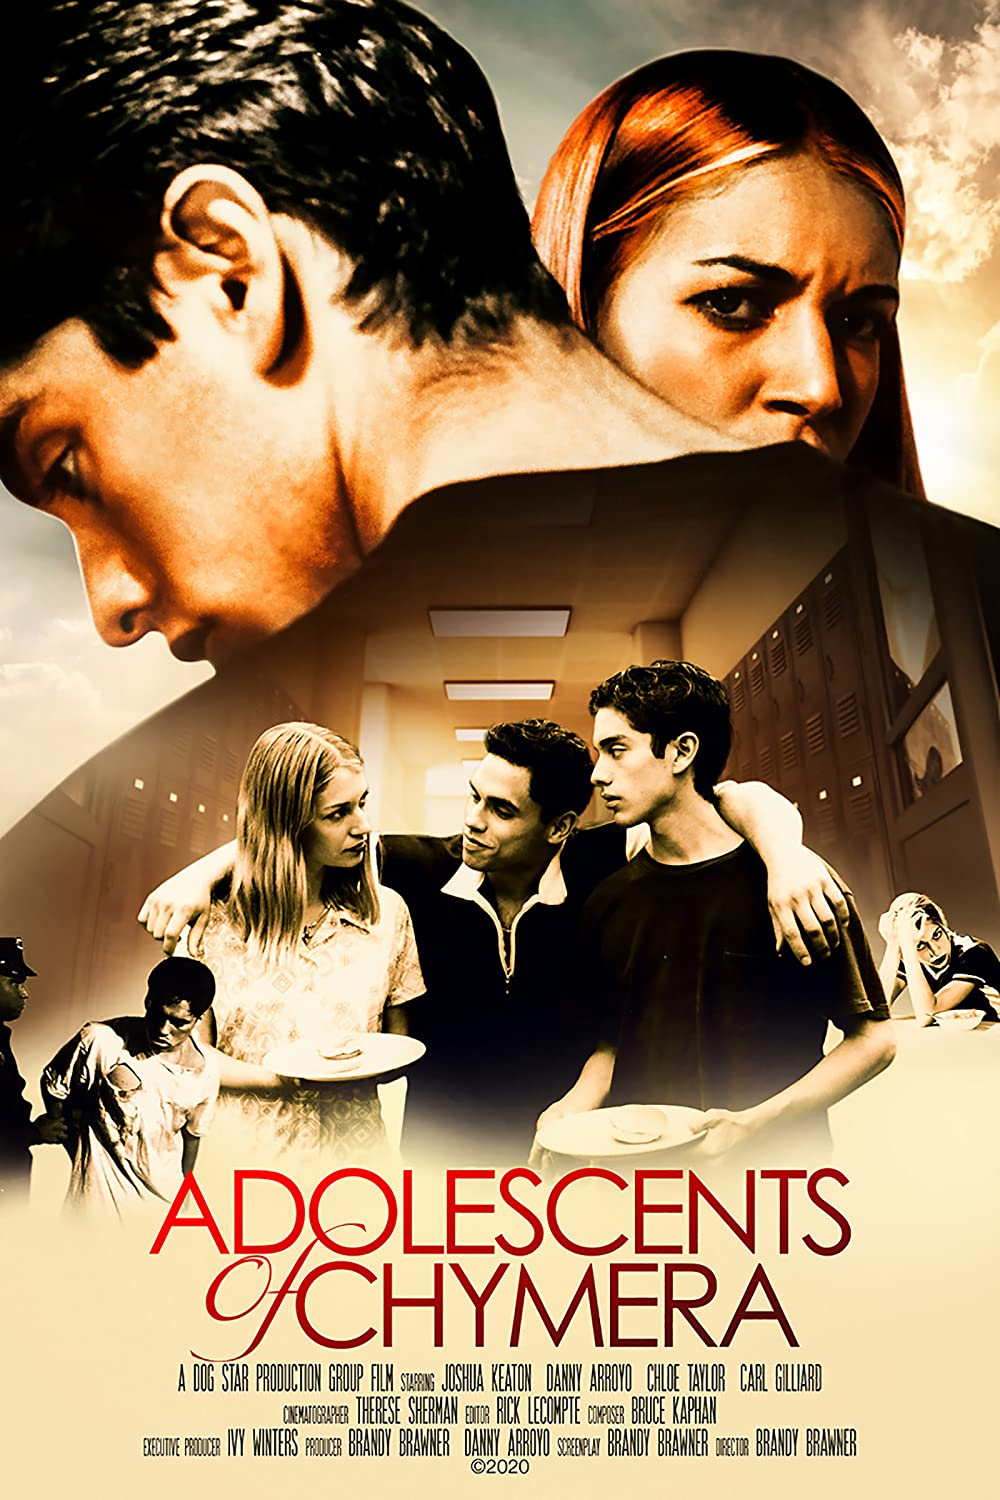 Adolescents of Chymera 2021 English 1080p | 720p | 250MB HDRip ESub 1.2GB | 798MB Download